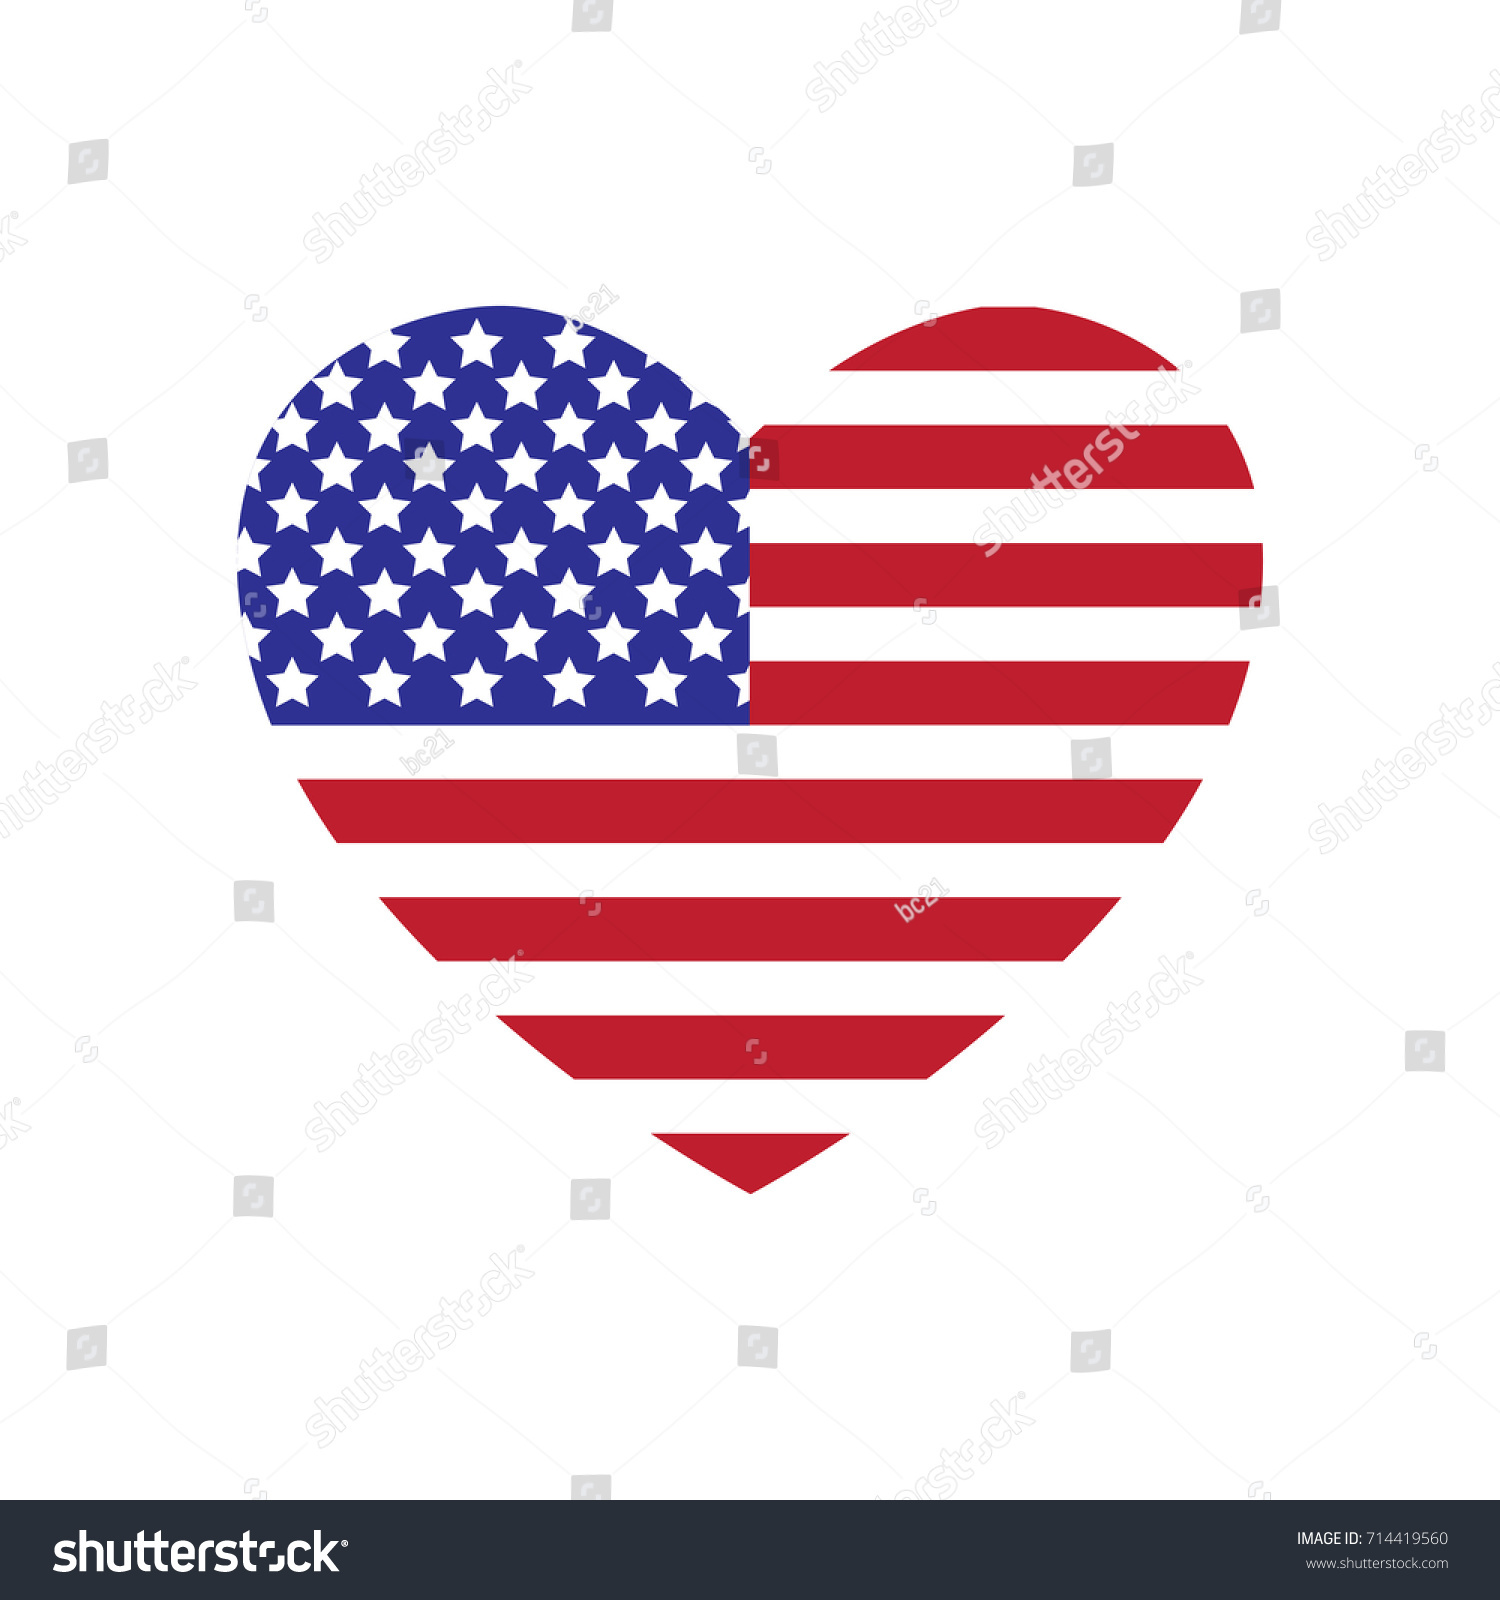 heart american flag suitable wall art stock vector royalty free